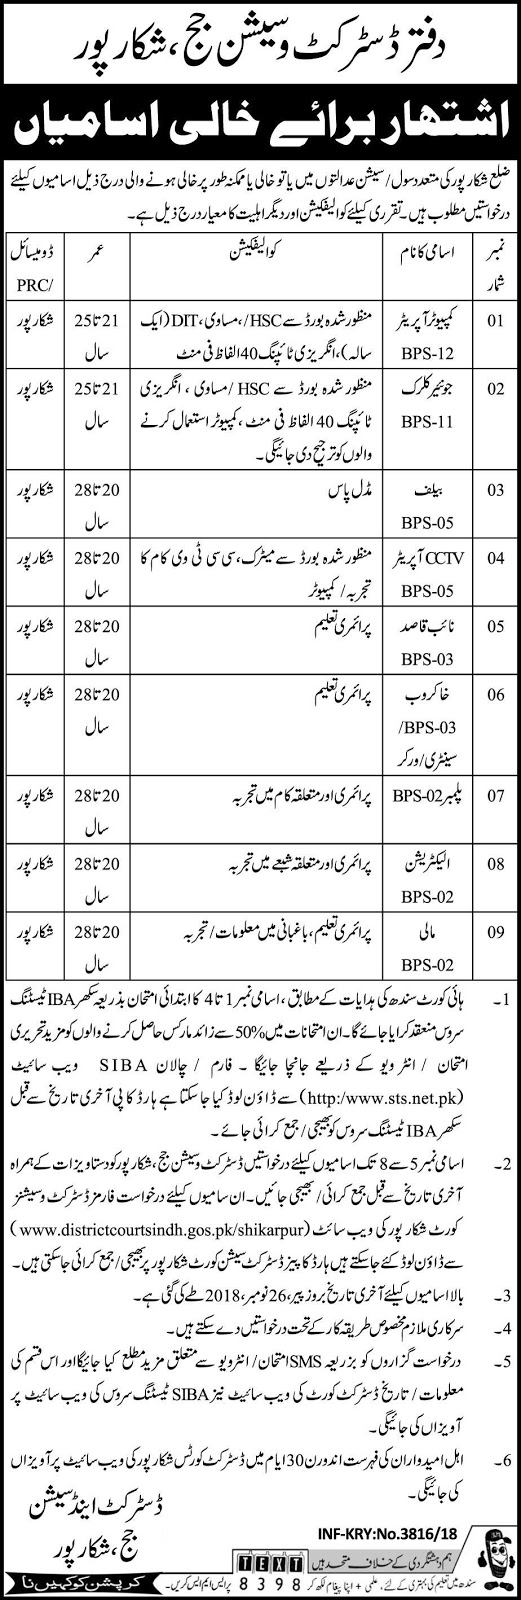 District Session Court Shikarpur Jobs 2018 Download Application Form